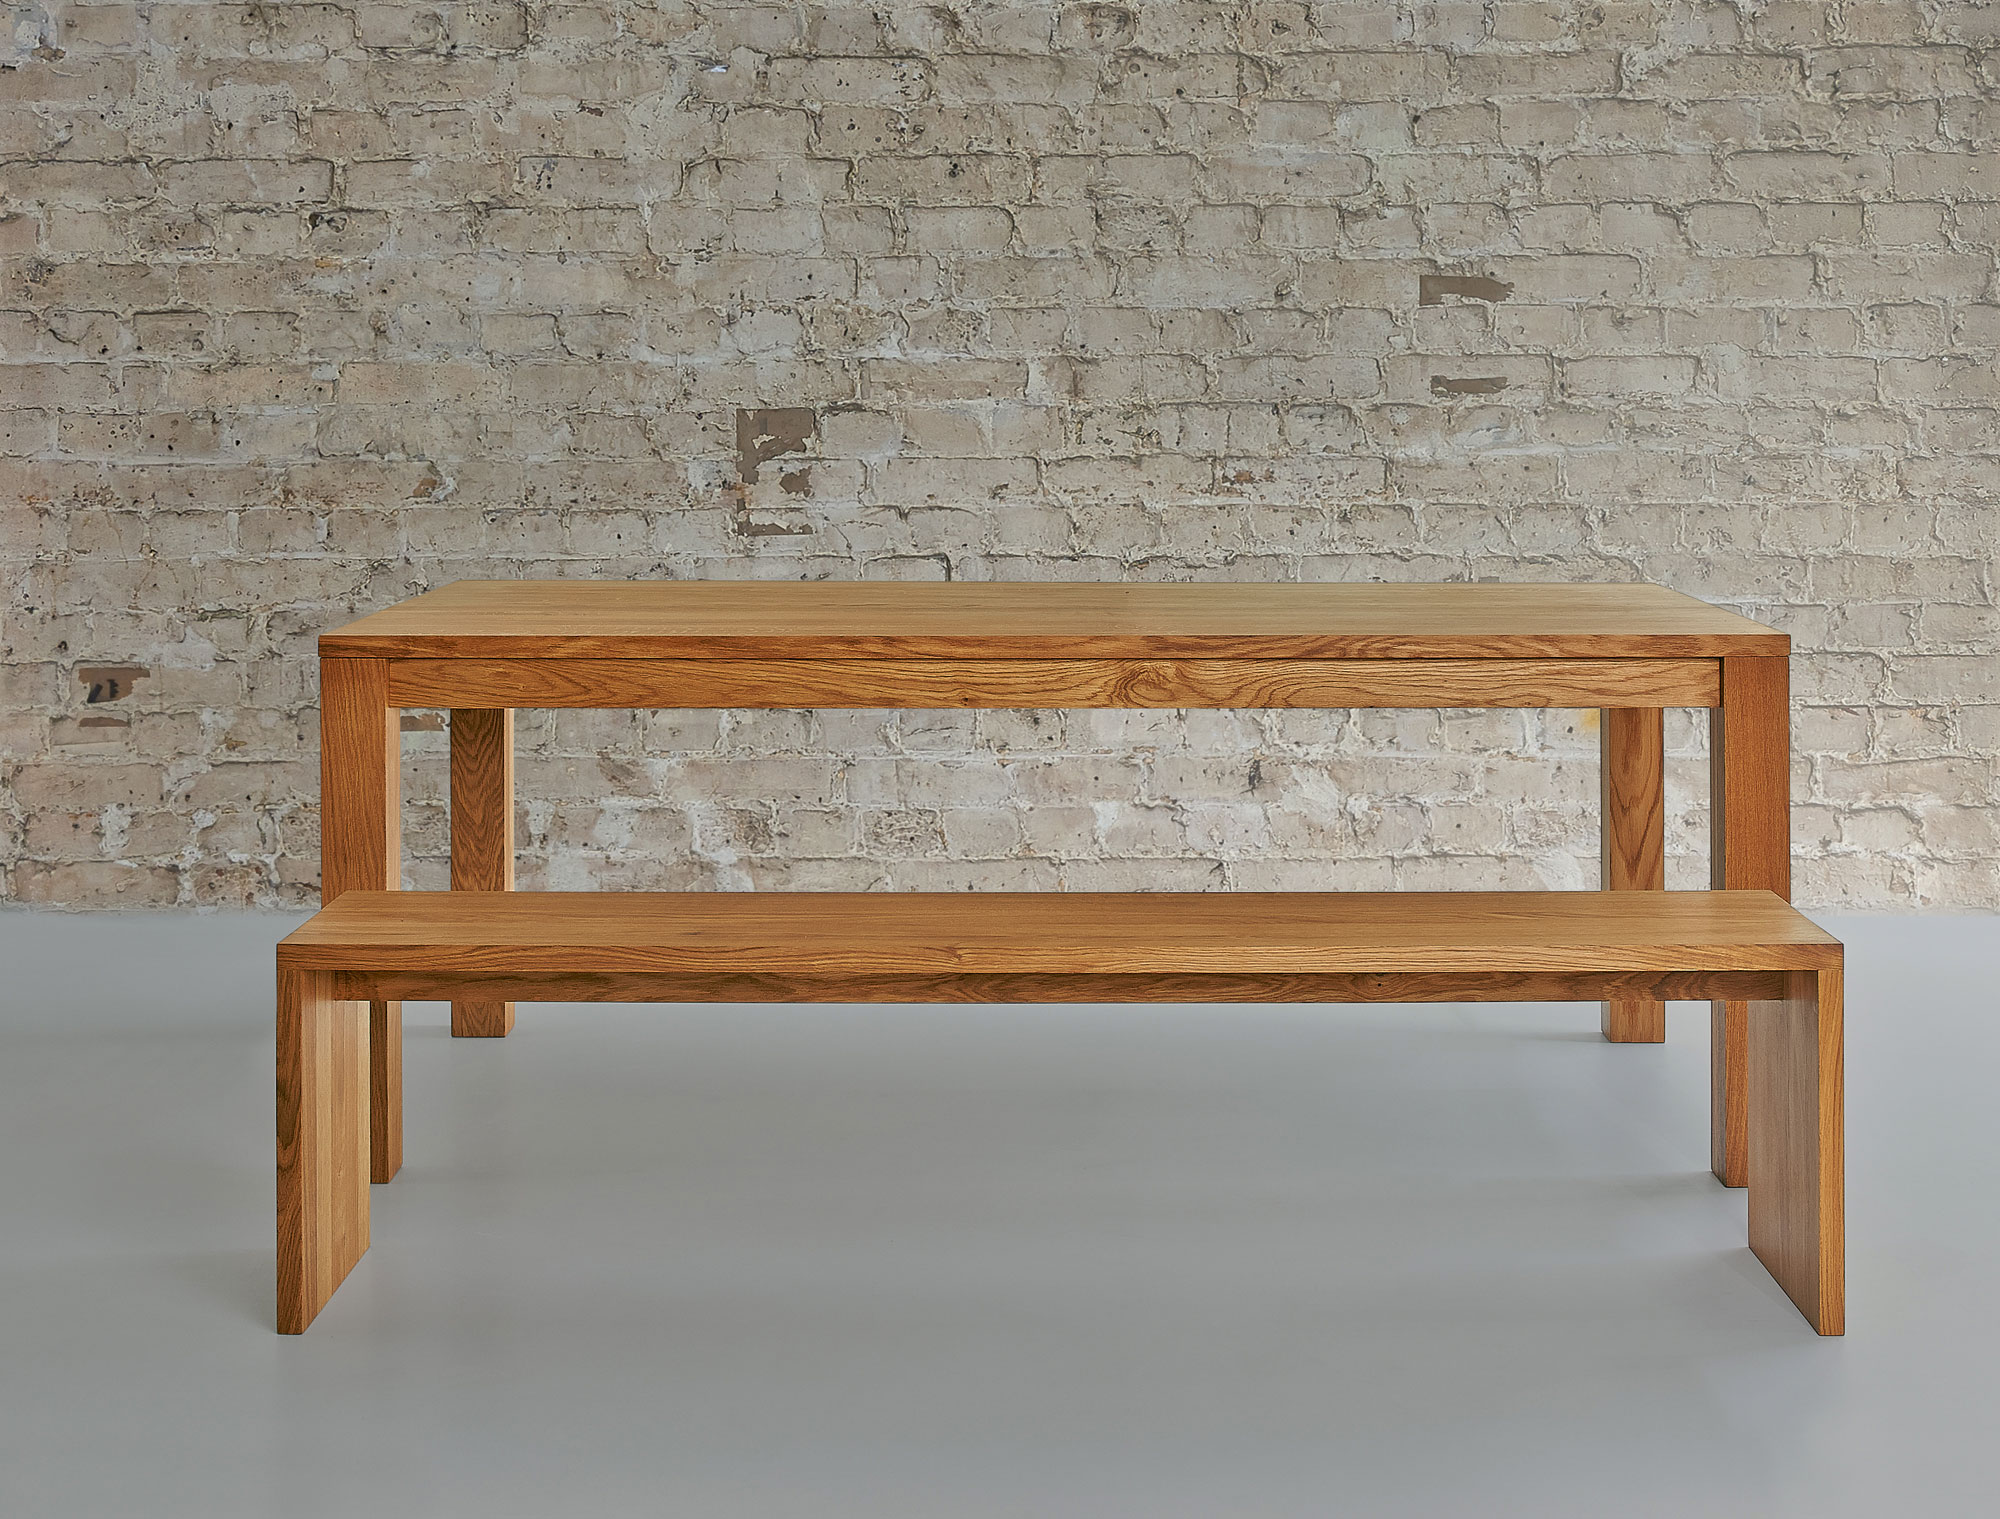 Solid Wood Bench MENA 3 1019 custom made in solid wood by vitamin design